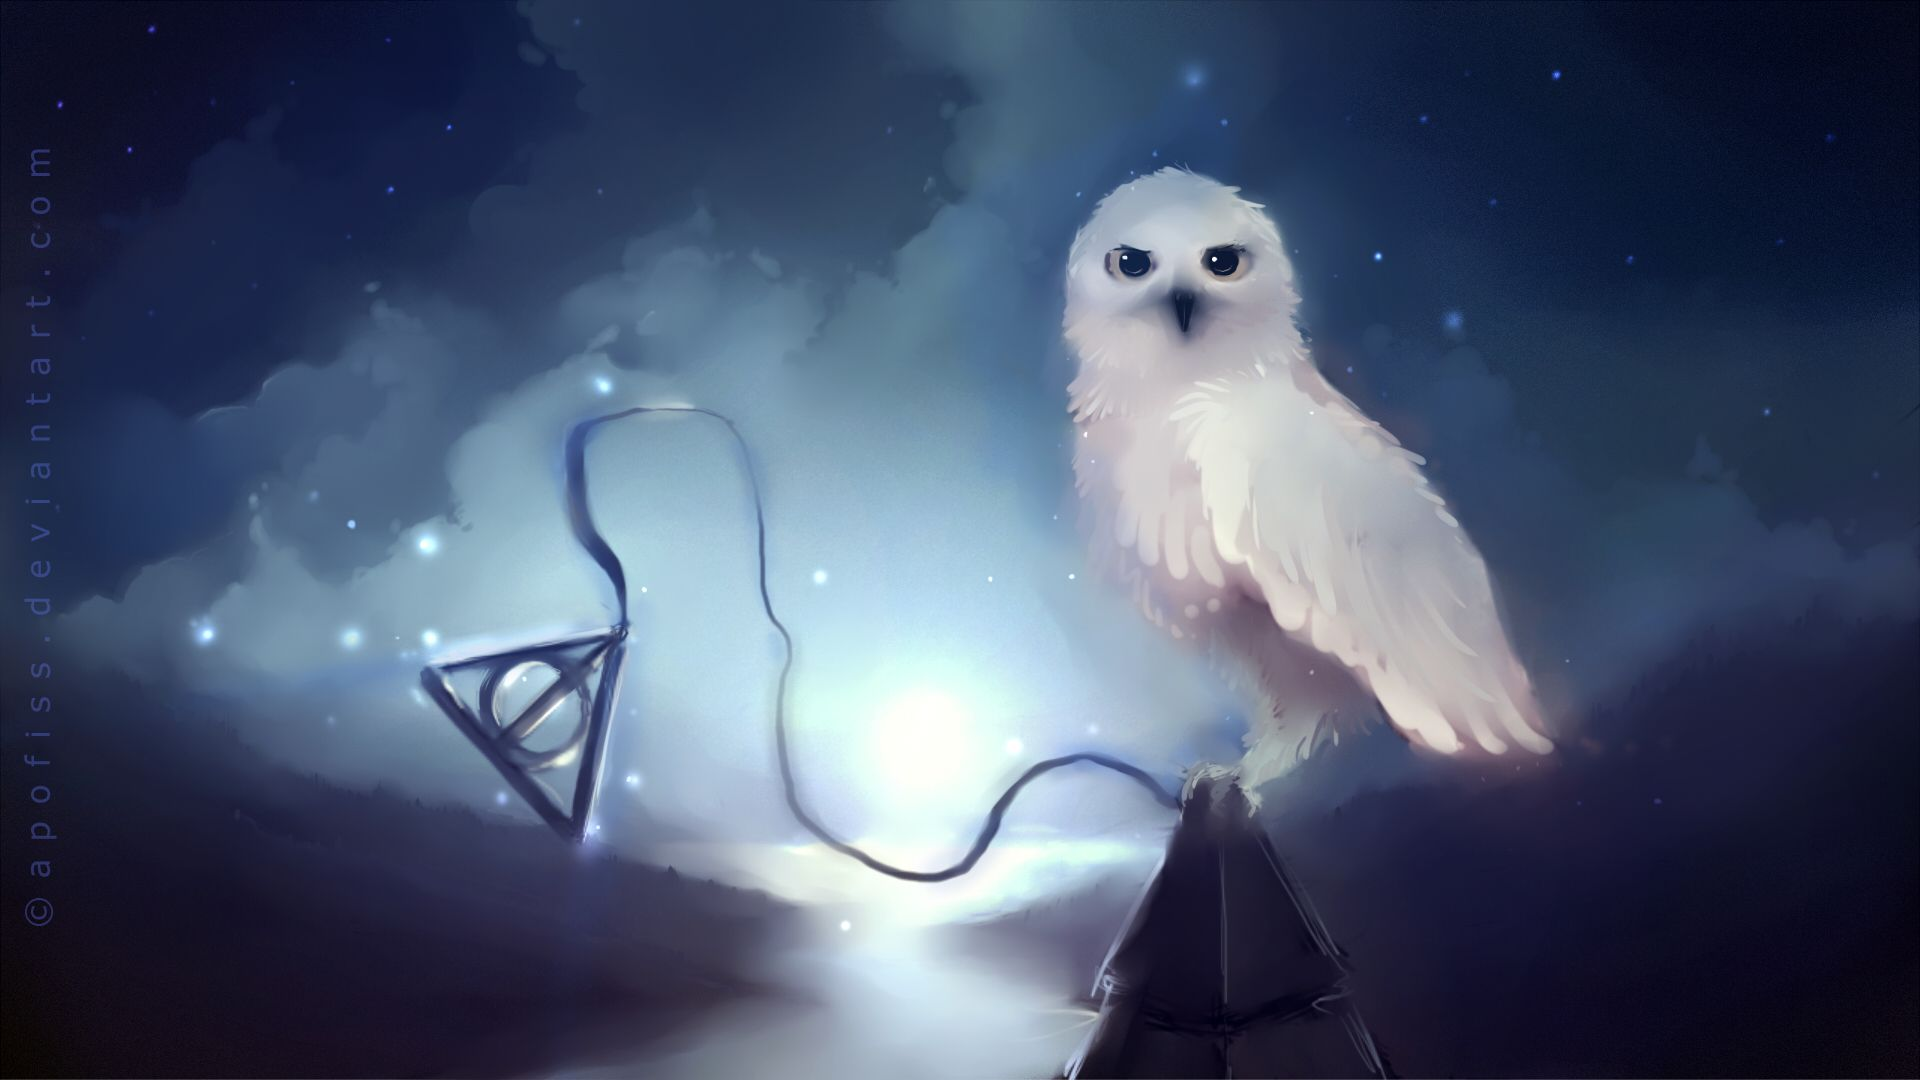 Harry Potter Wallpapers - Top Free Harry Potter Backgrounds